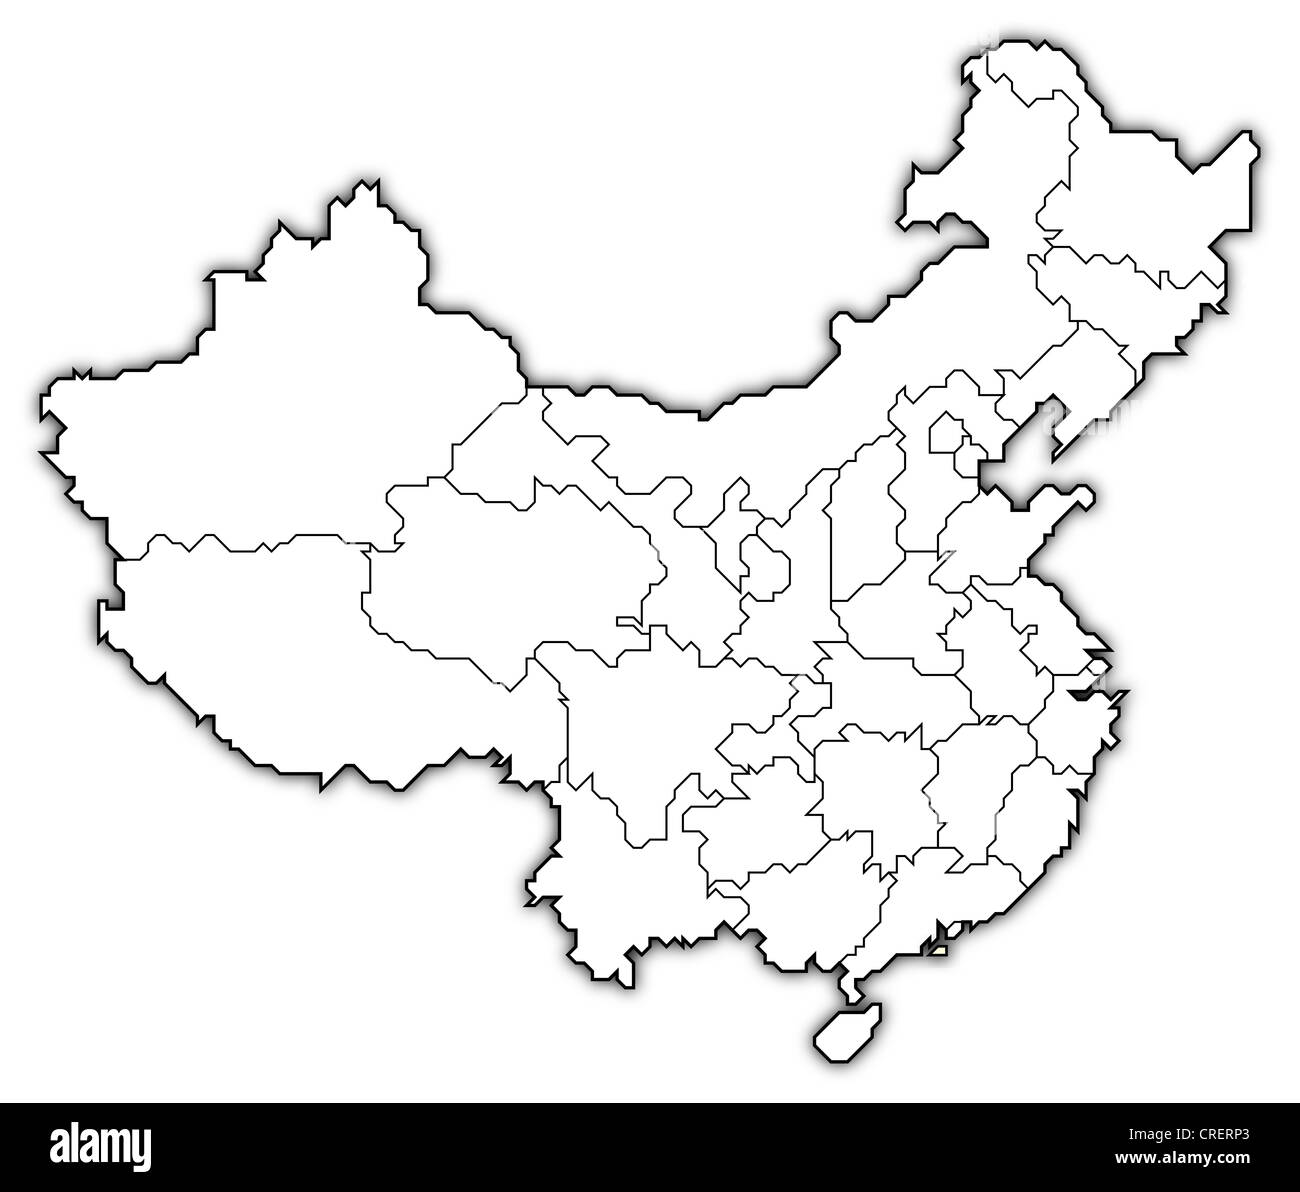 Political map of China with the several provinces where Macau is